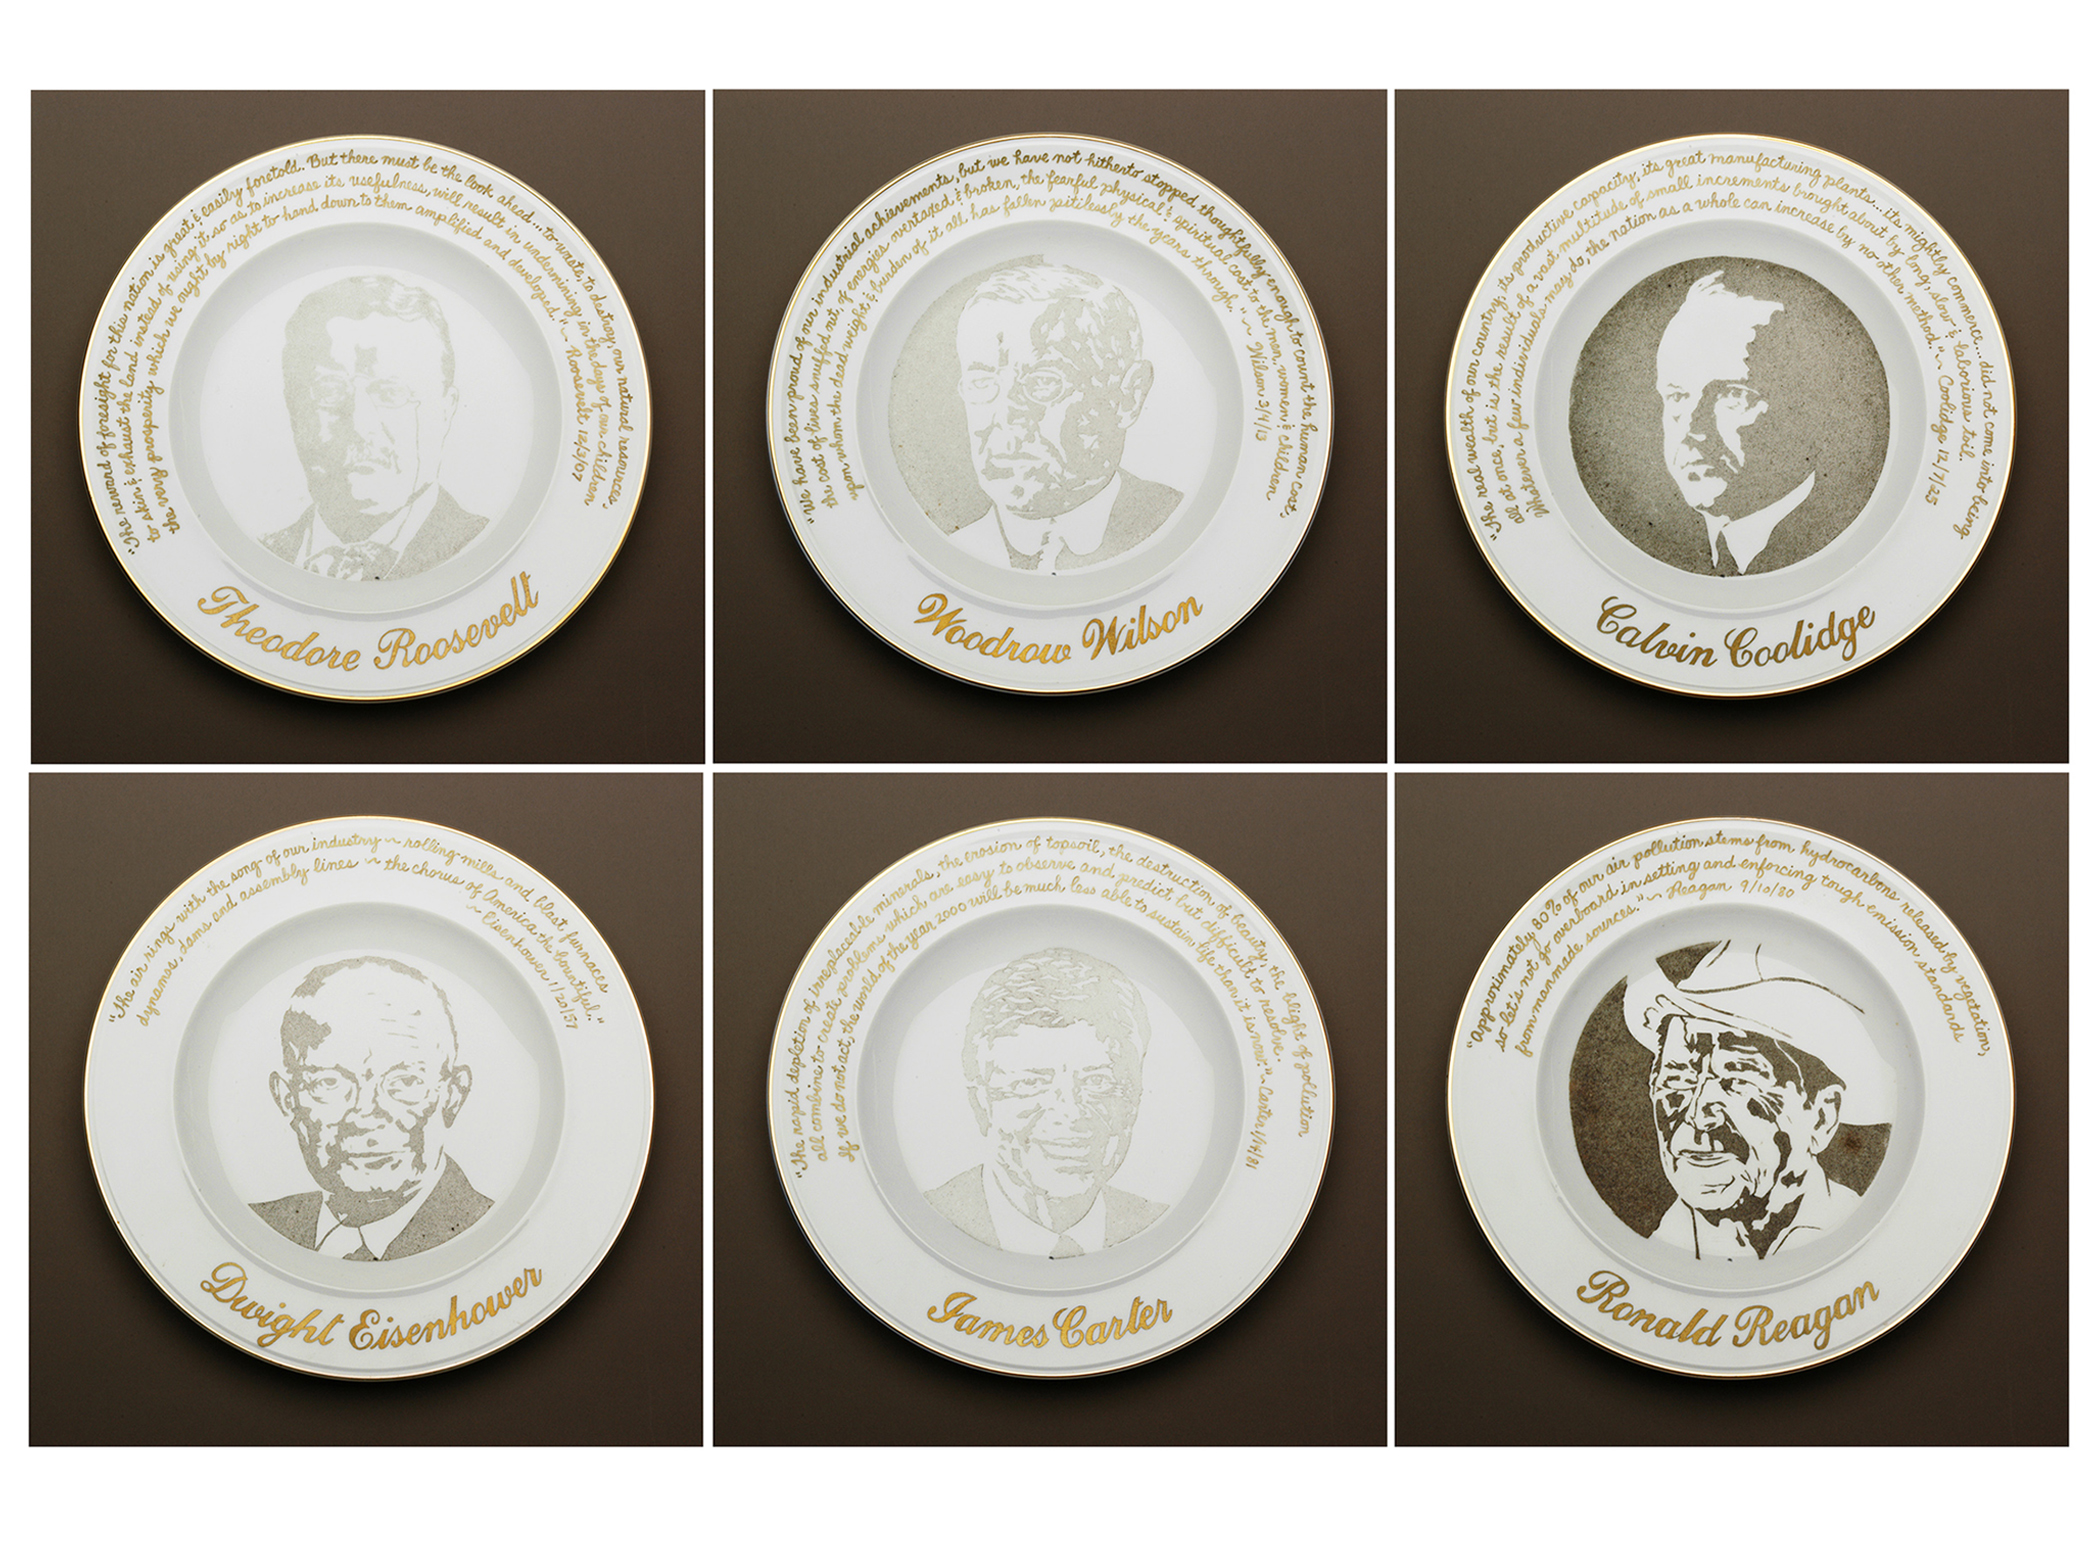 """""""Presidential Commemorative Smog Plates"""" (1992) Smog (particulate matter) on porcelain plates with their quotations about the environment and industry written in gold. The stenciled plates were left out longer, depending on the president's environmental records."""